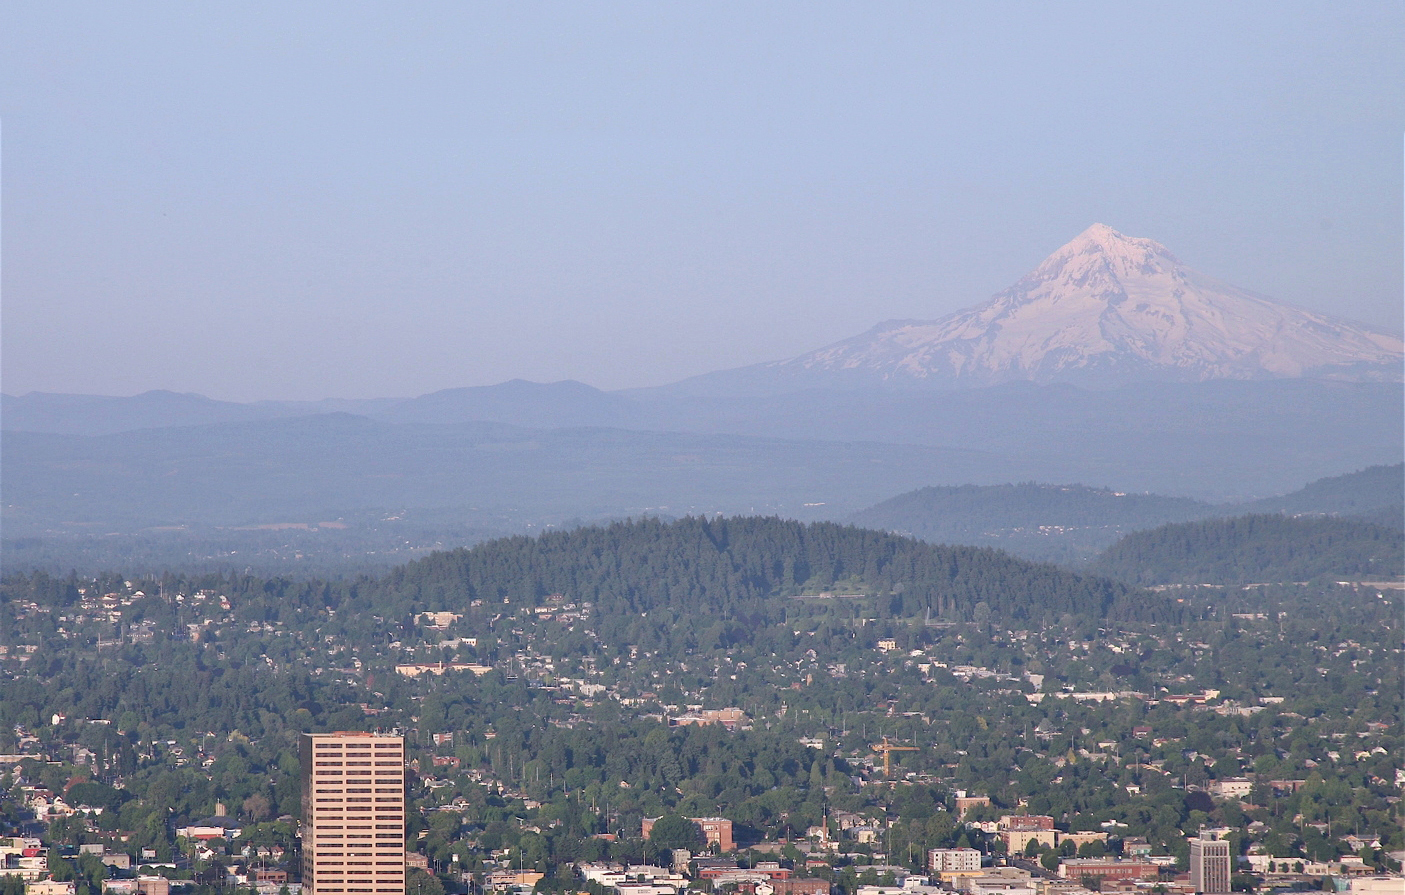 Mount Hood looms over the Portland cityscape.